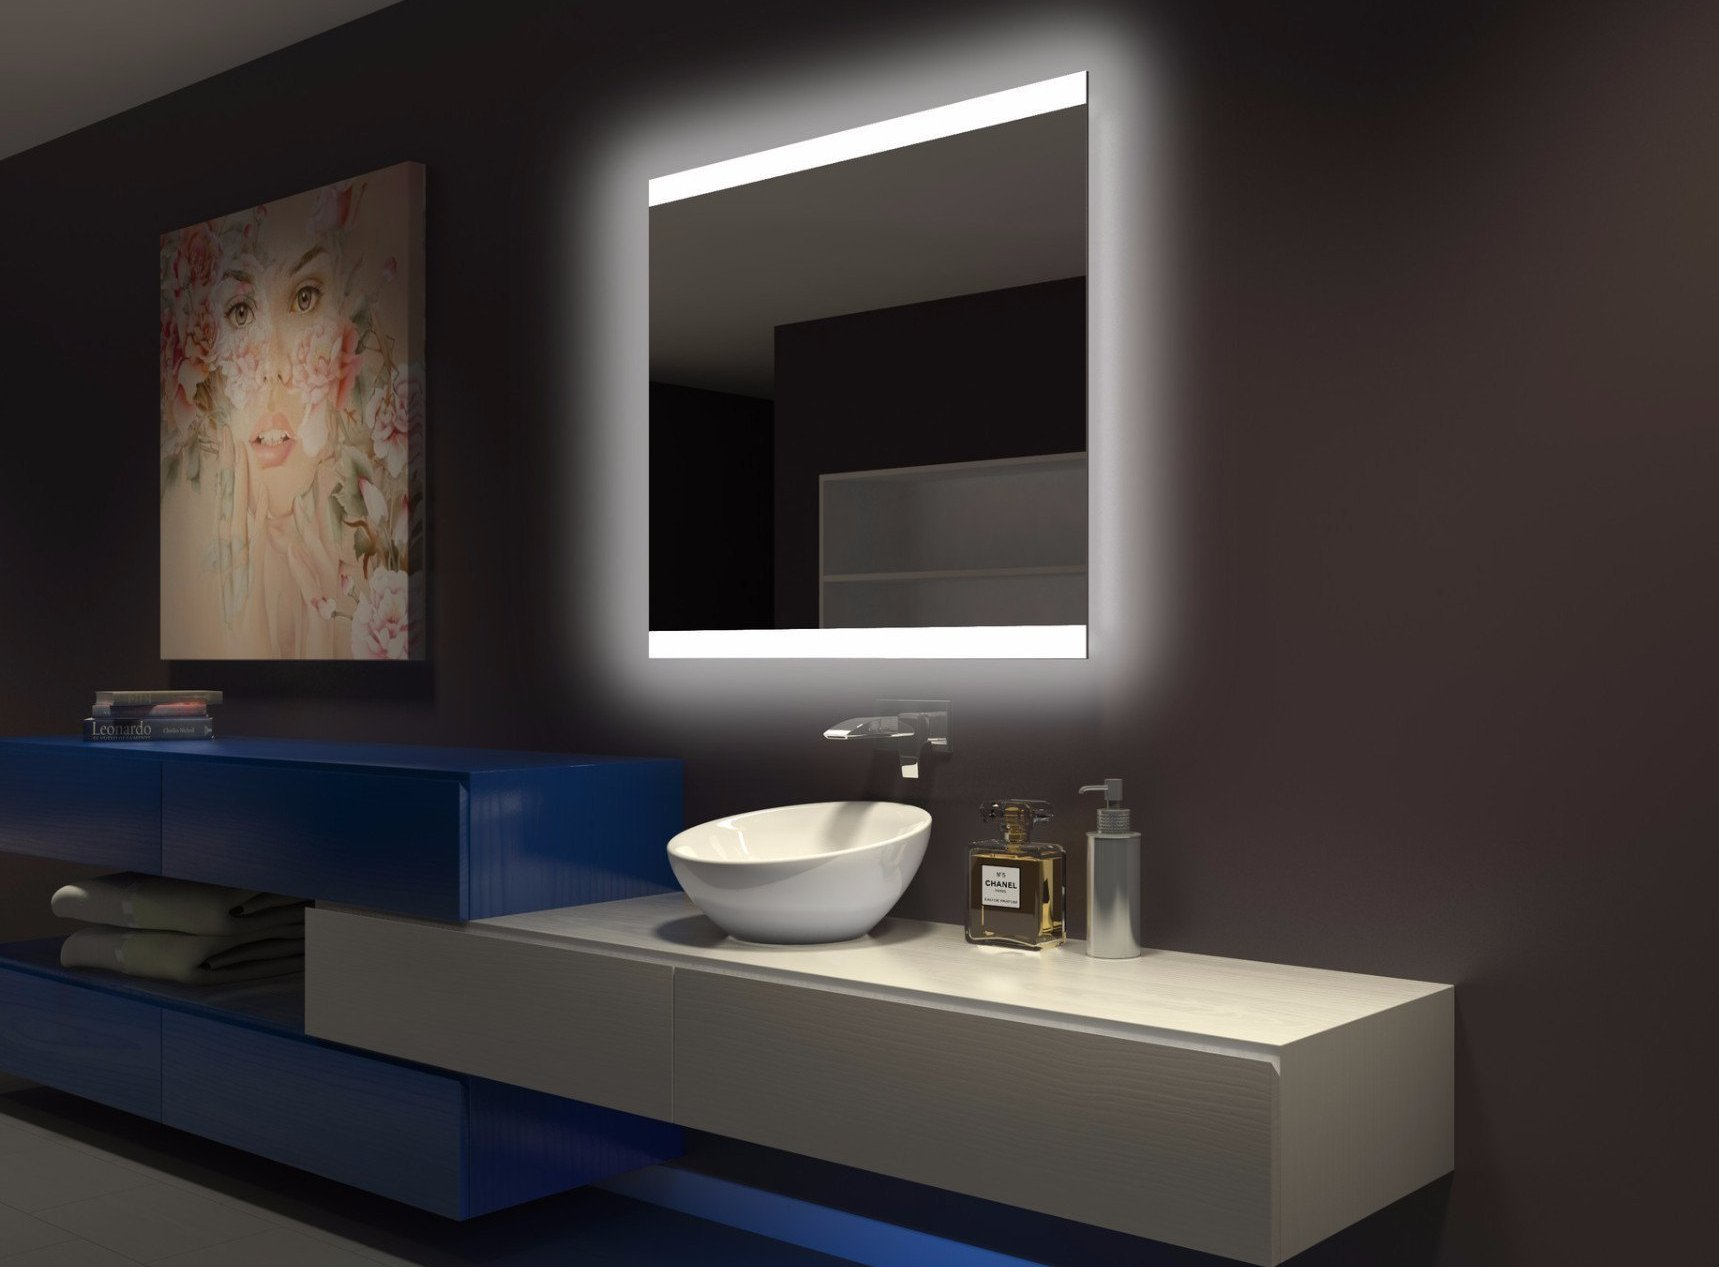 Dimmable Backlit Mirror Paris 40 x 35 x 2 in